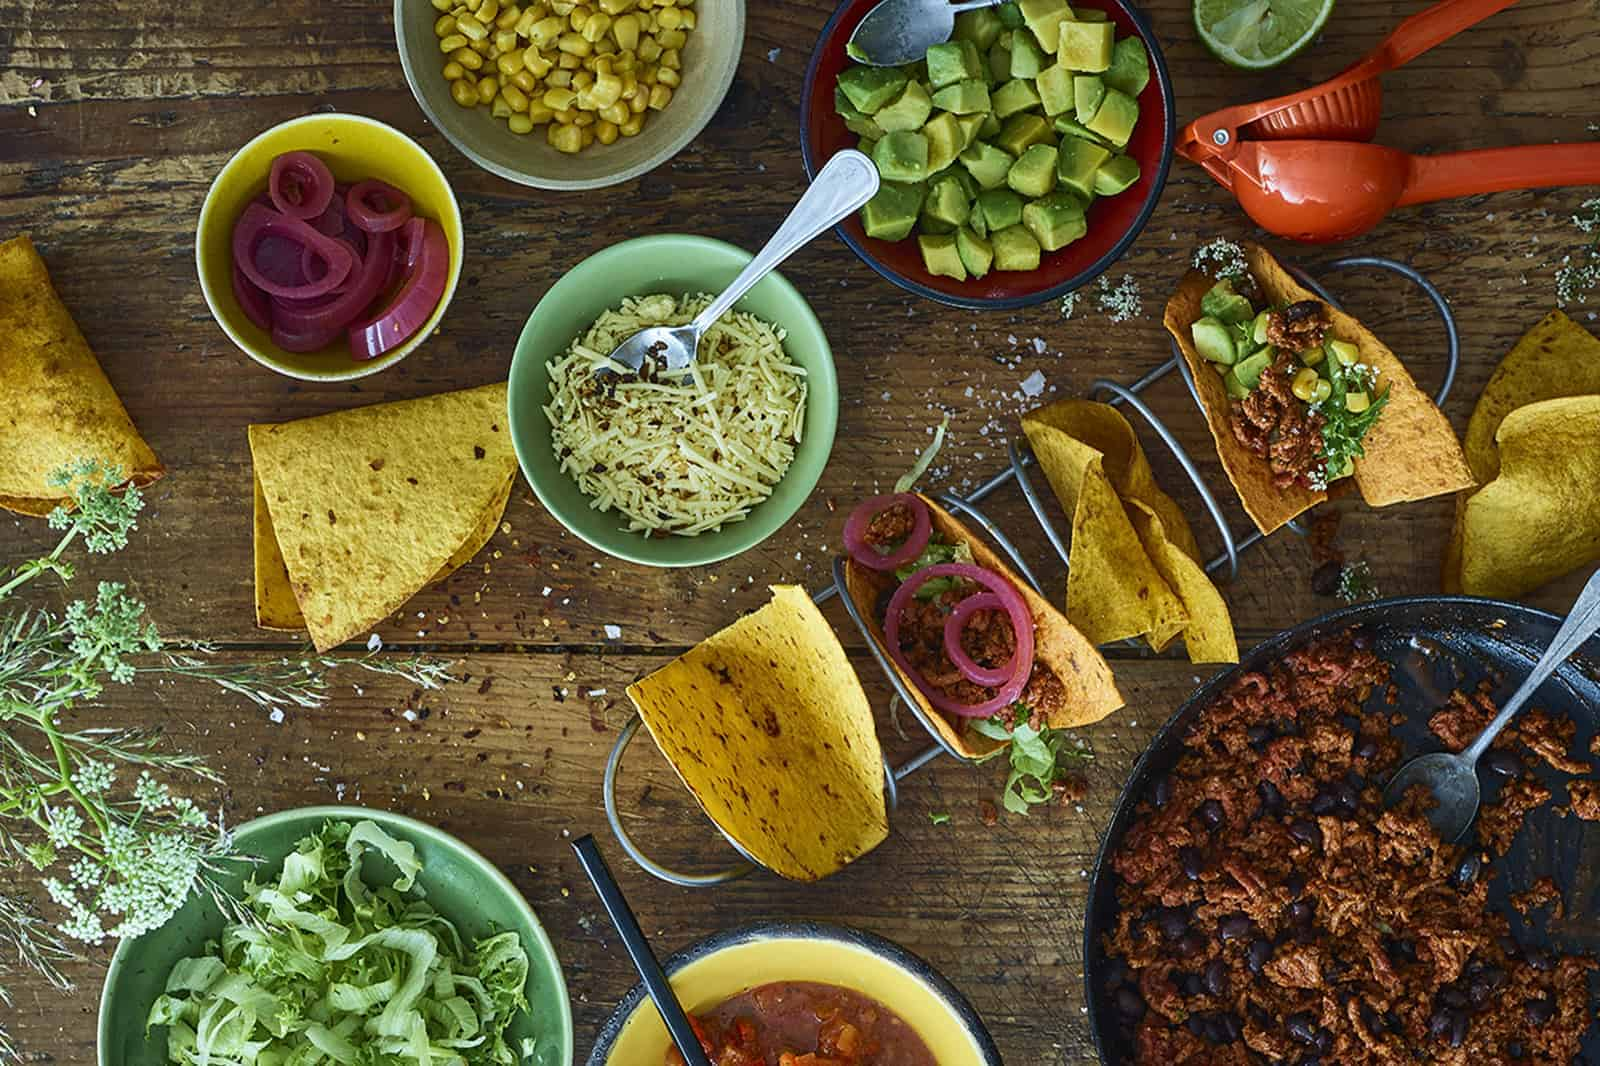 1.	Mexicaanse tacos met vegan twist